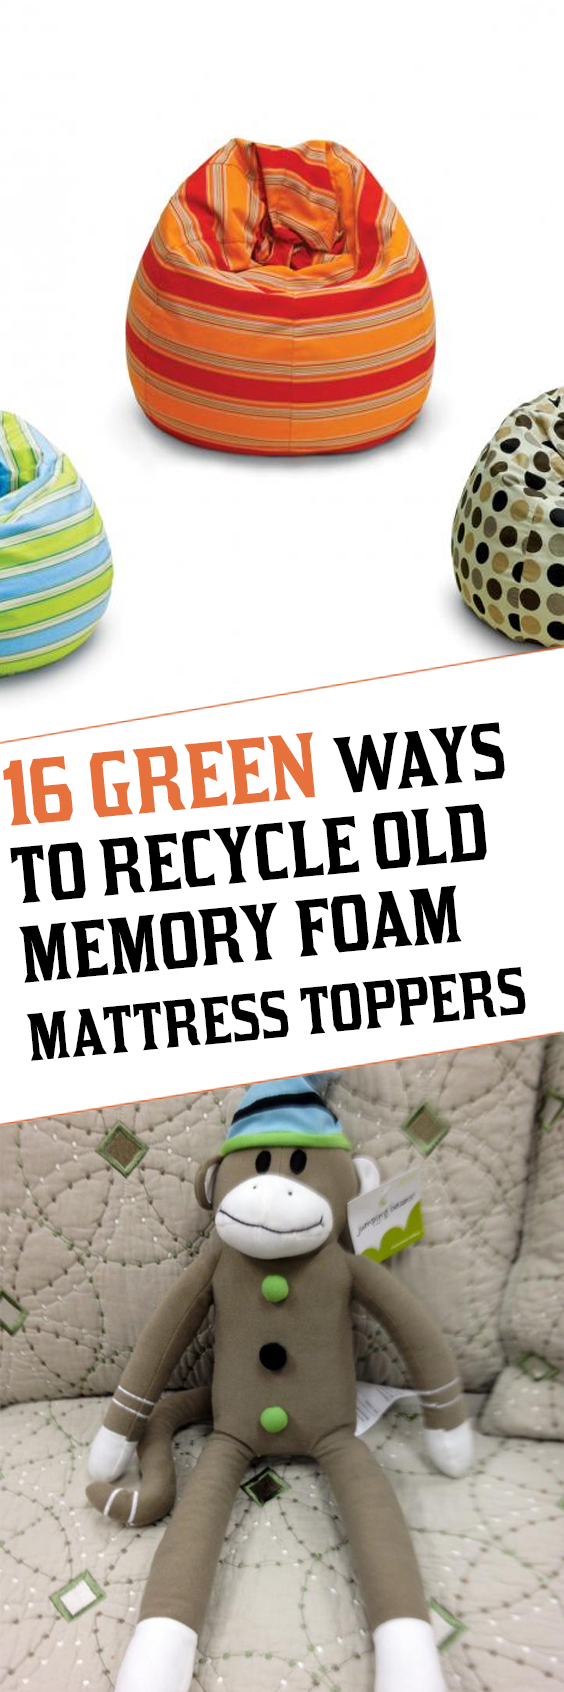 16 Green Ways To Recycle Old Memory Foam Mattress Toppers Memory Foam Mattress Topper Foam